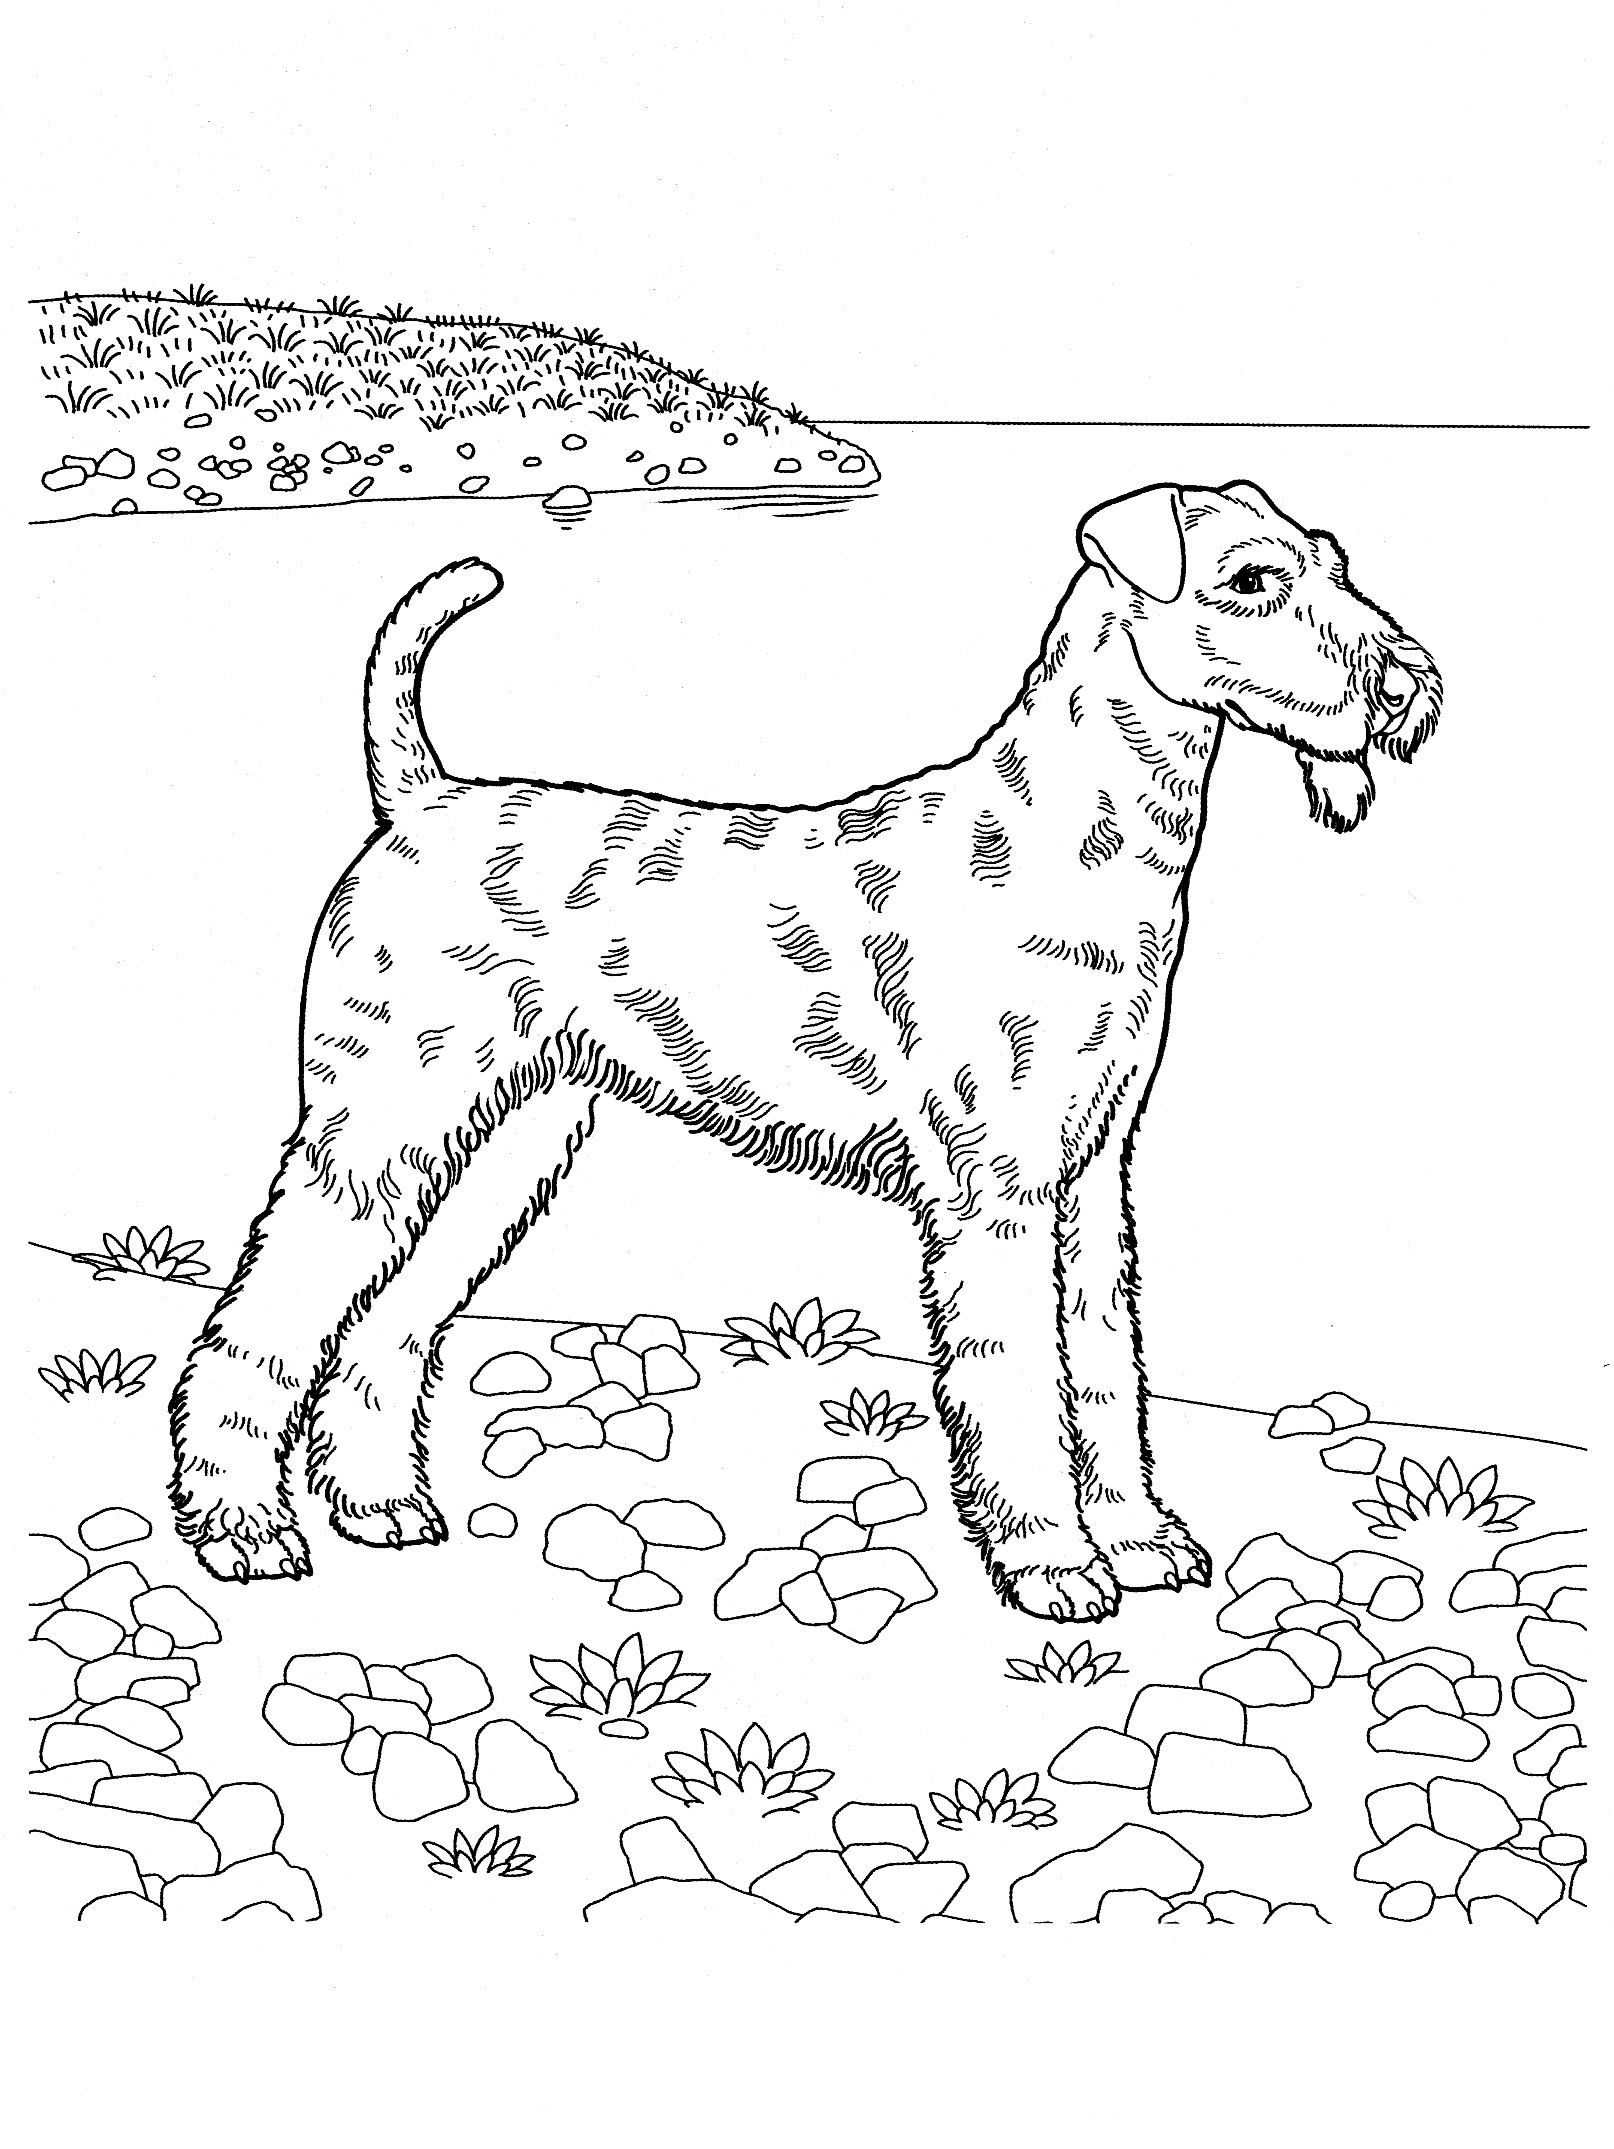 dog_coloring_pages Teenagers coloring pages   Coloring pages ...